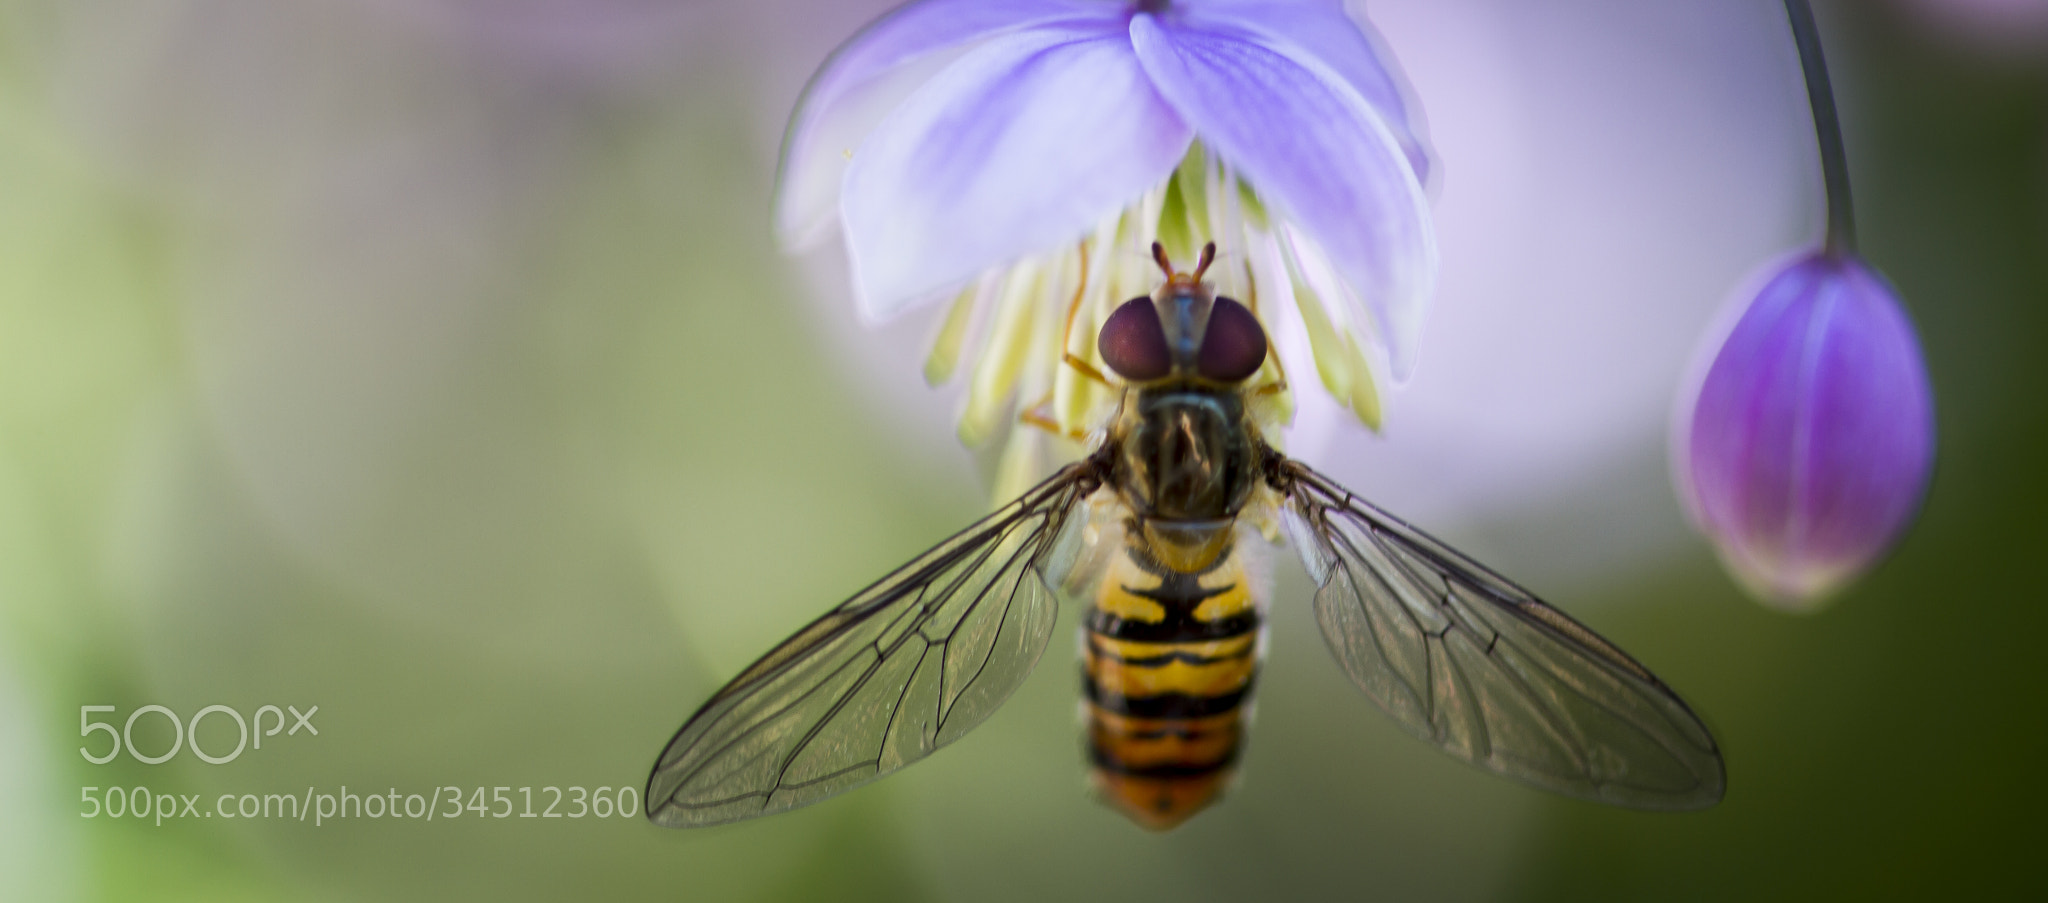 Photograph Hoverfly by Tom Nielsen on 500px